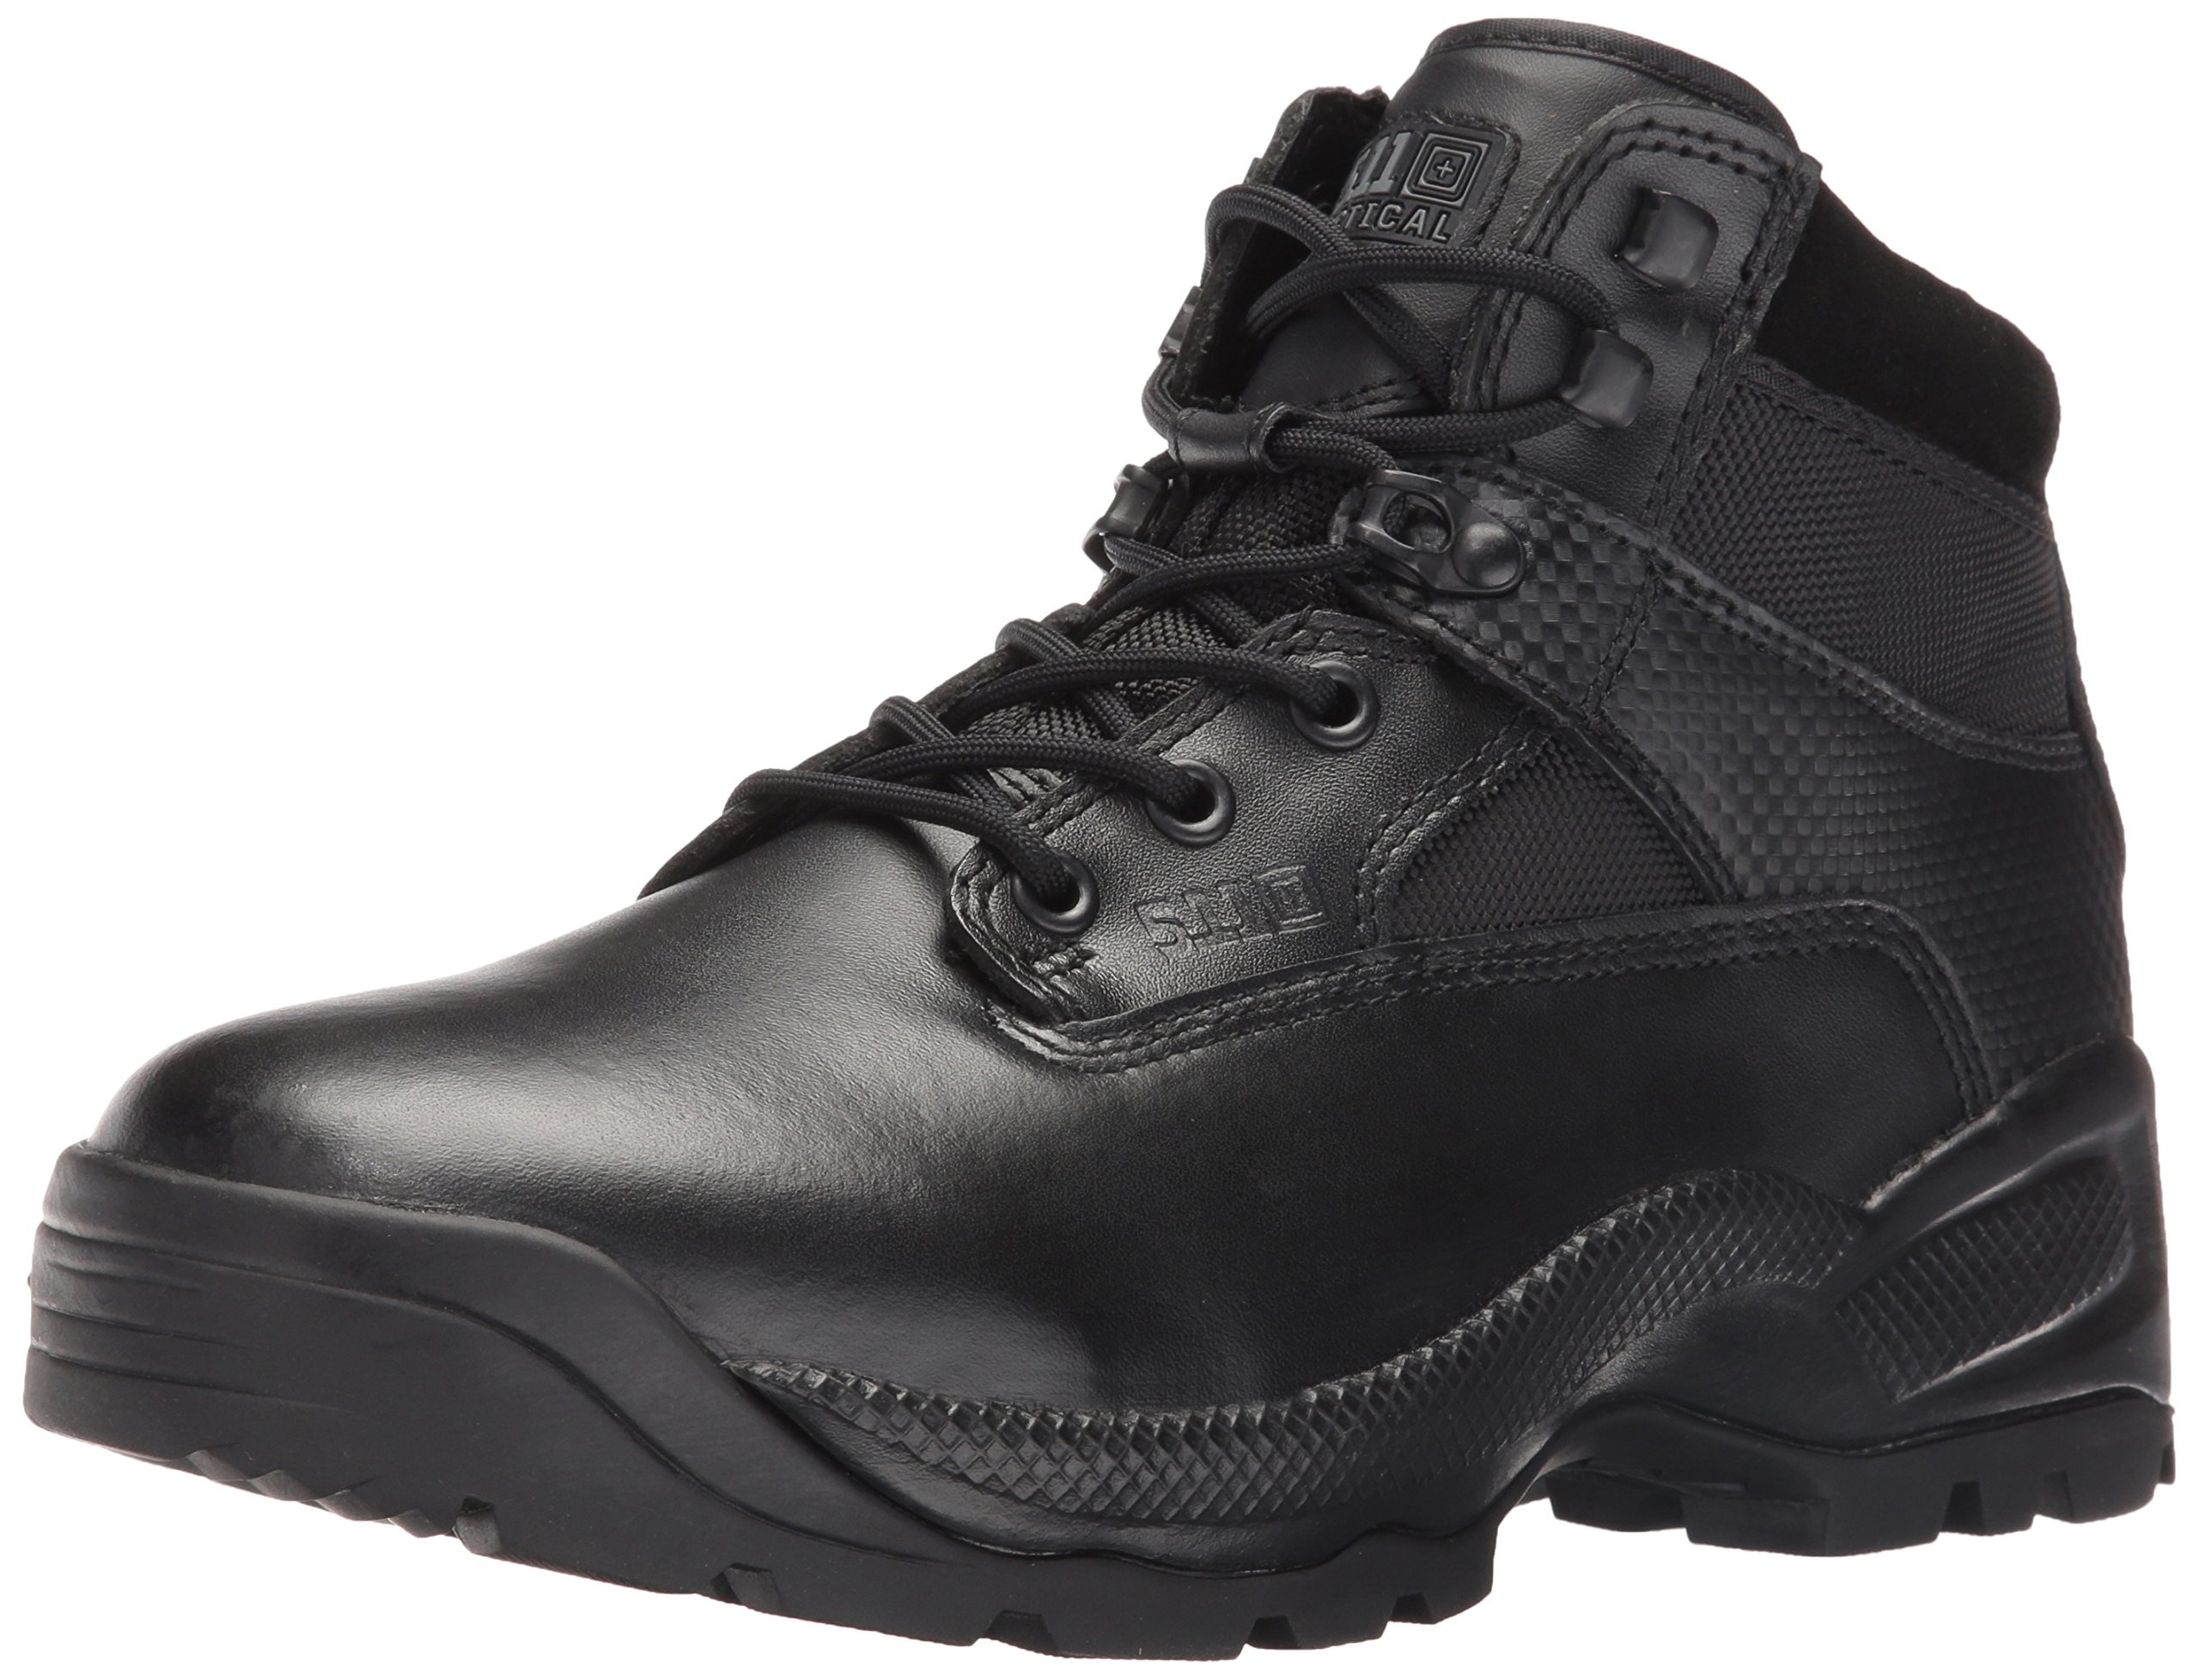 5.11 Tactical A.T.A.C. 6'' Side Zip Boot, Black, 10.5 (R)